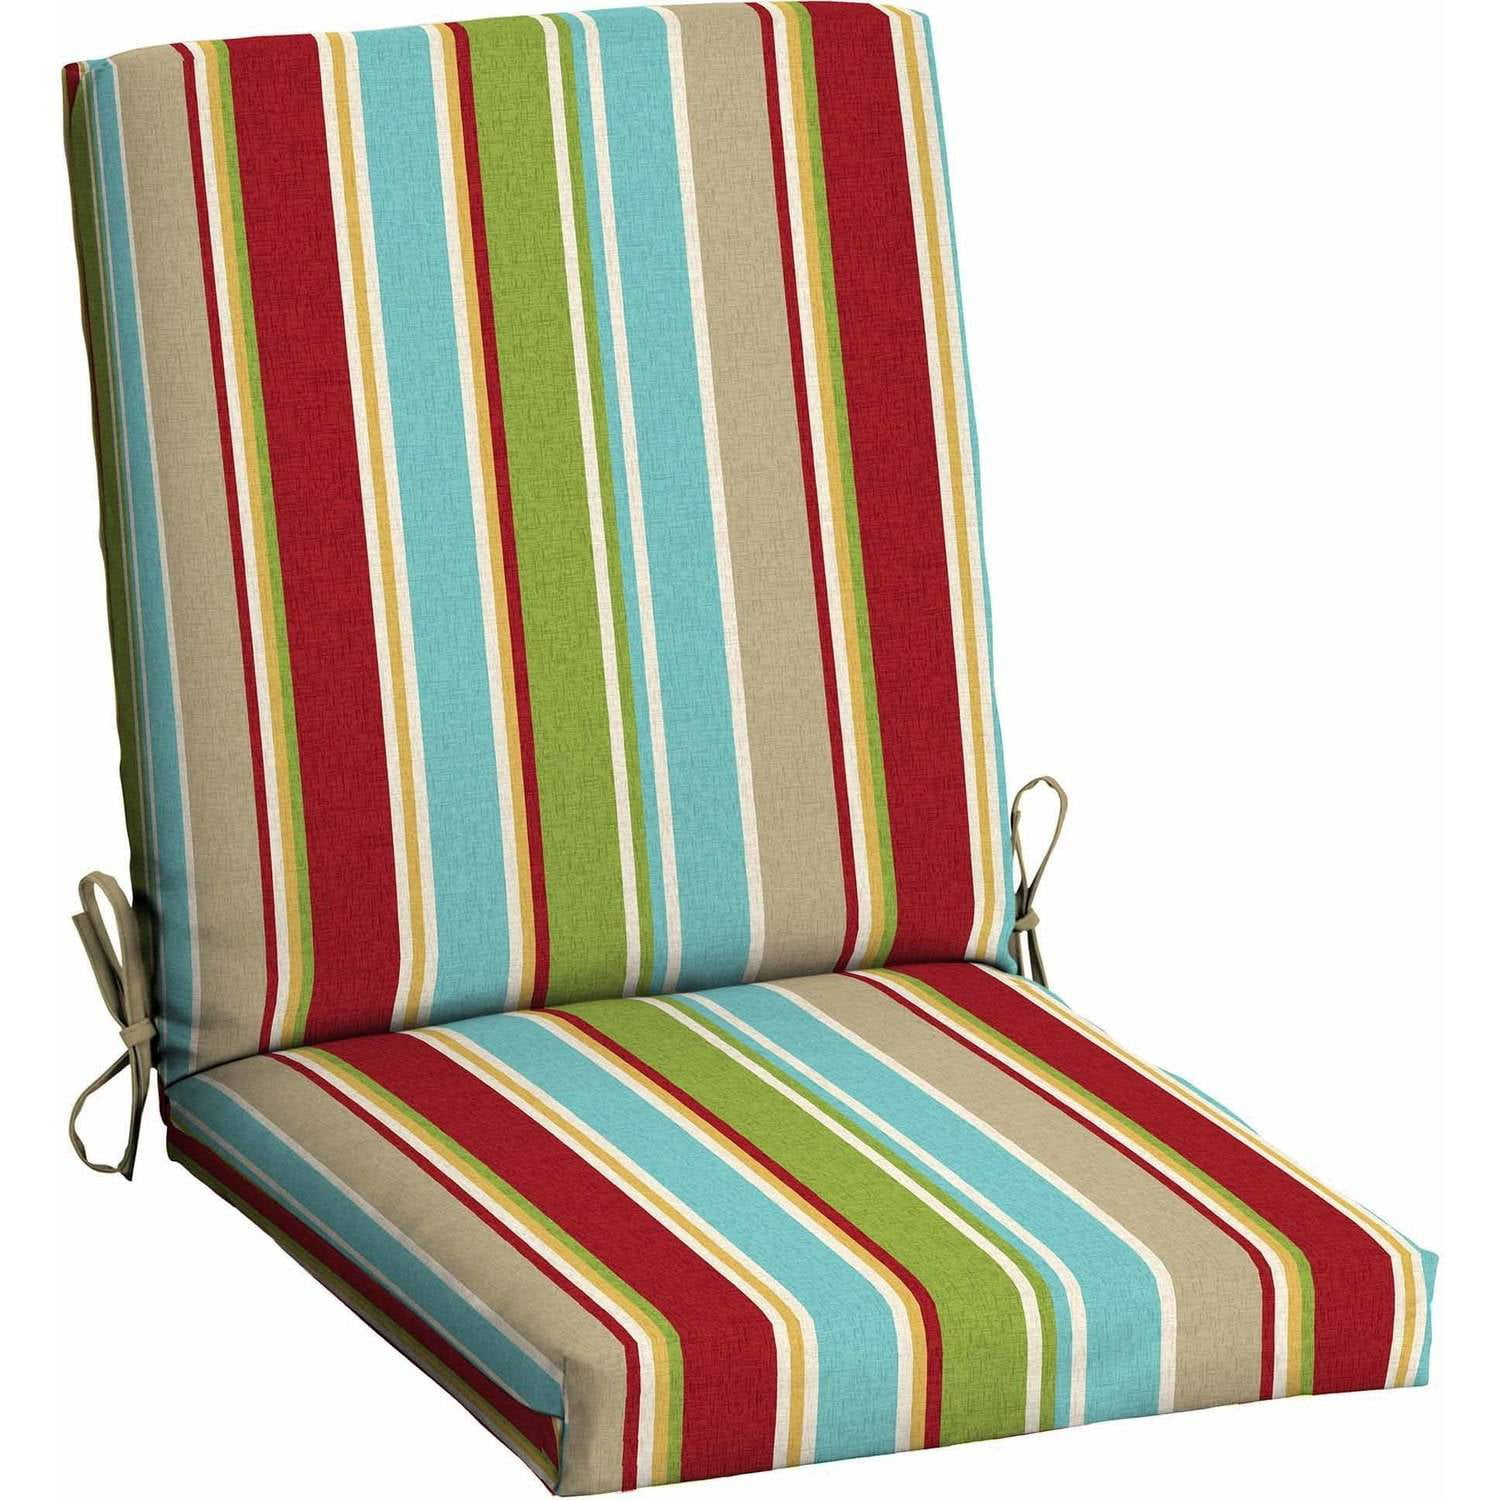 Etonnant Patio Chair Cushion. Mainstays Outdoor ...